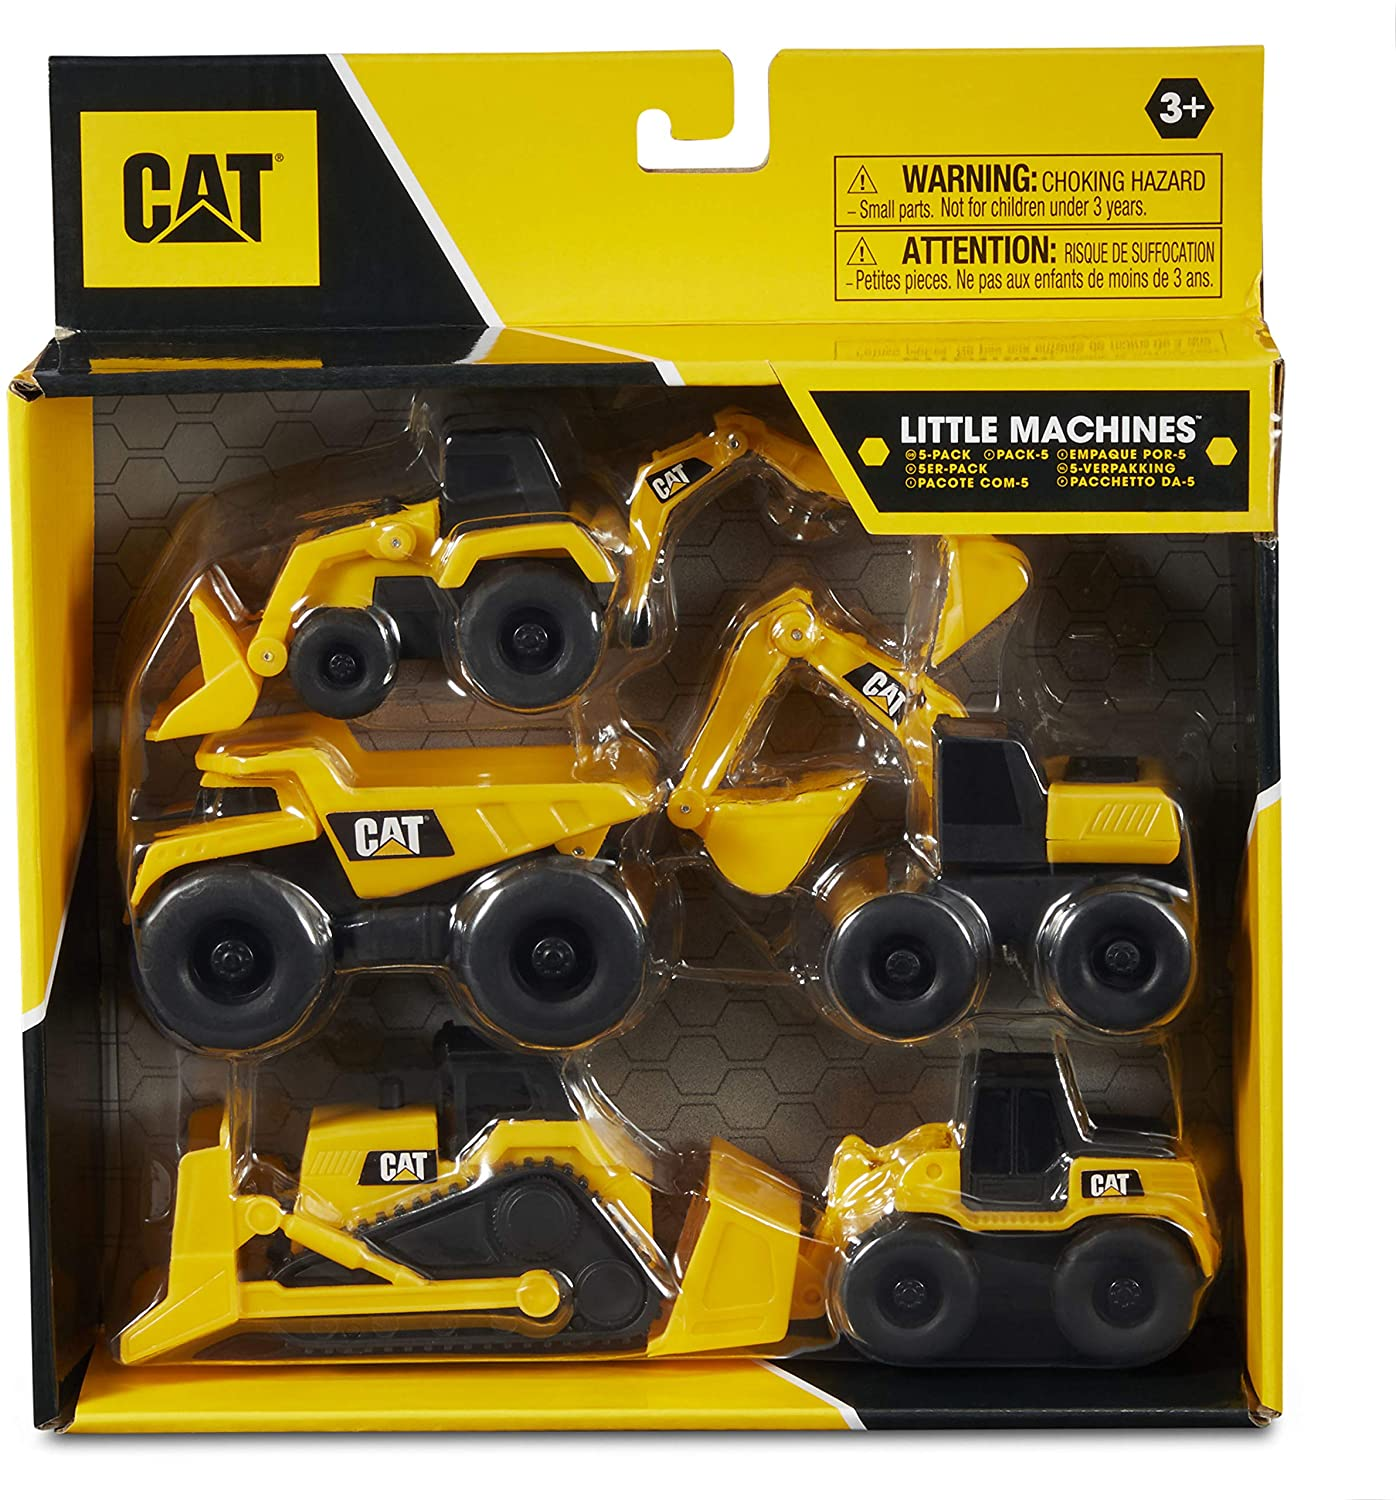 CAT Little Machines 5 Pack